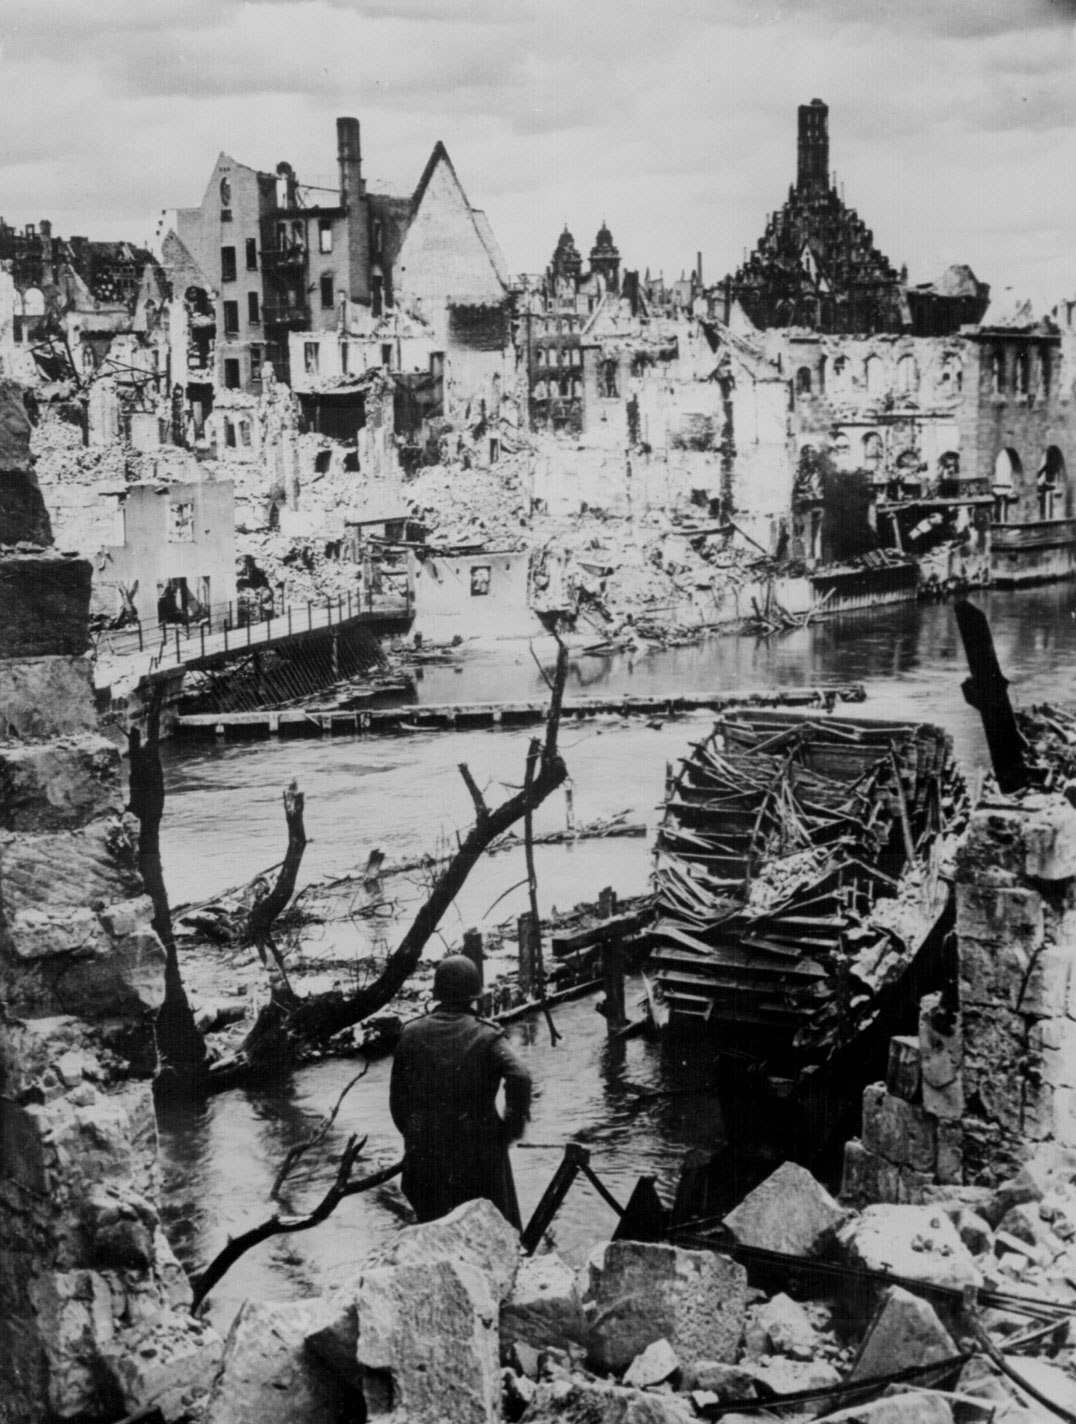 An American soldier observed the destruction of an industrial town near Nuremberg, Germany, 20 Apr 1945 (US National Archives: 208-AA-207L-1)